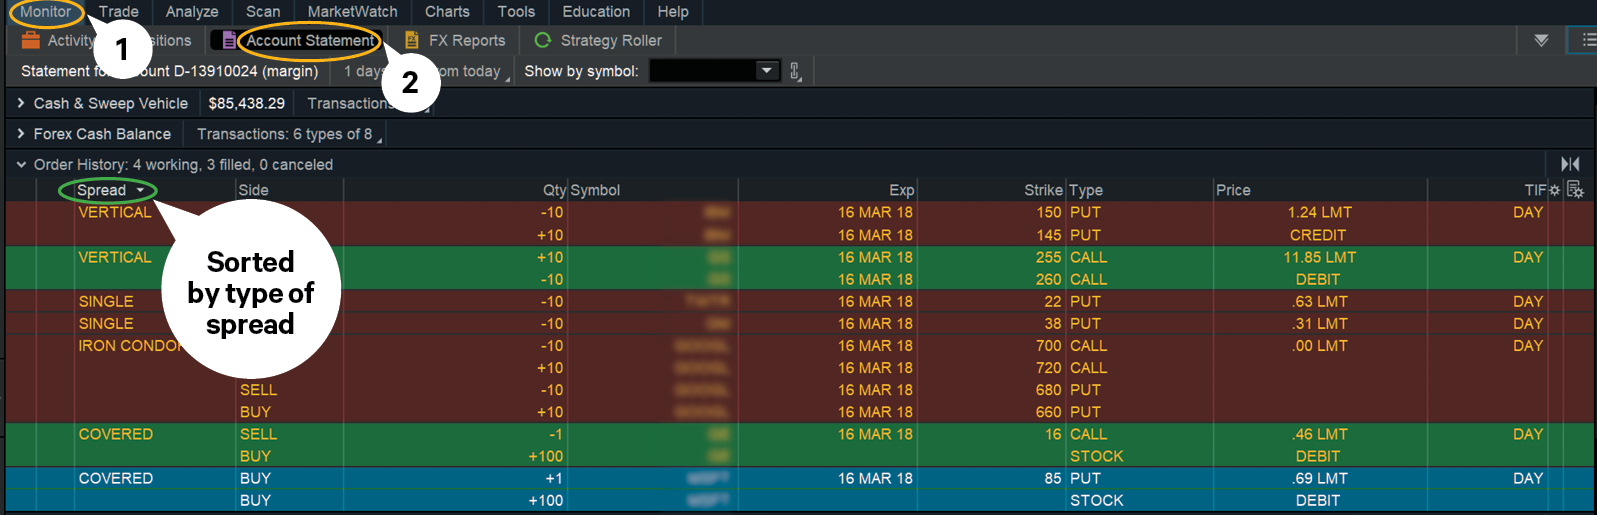 option orders and spreads